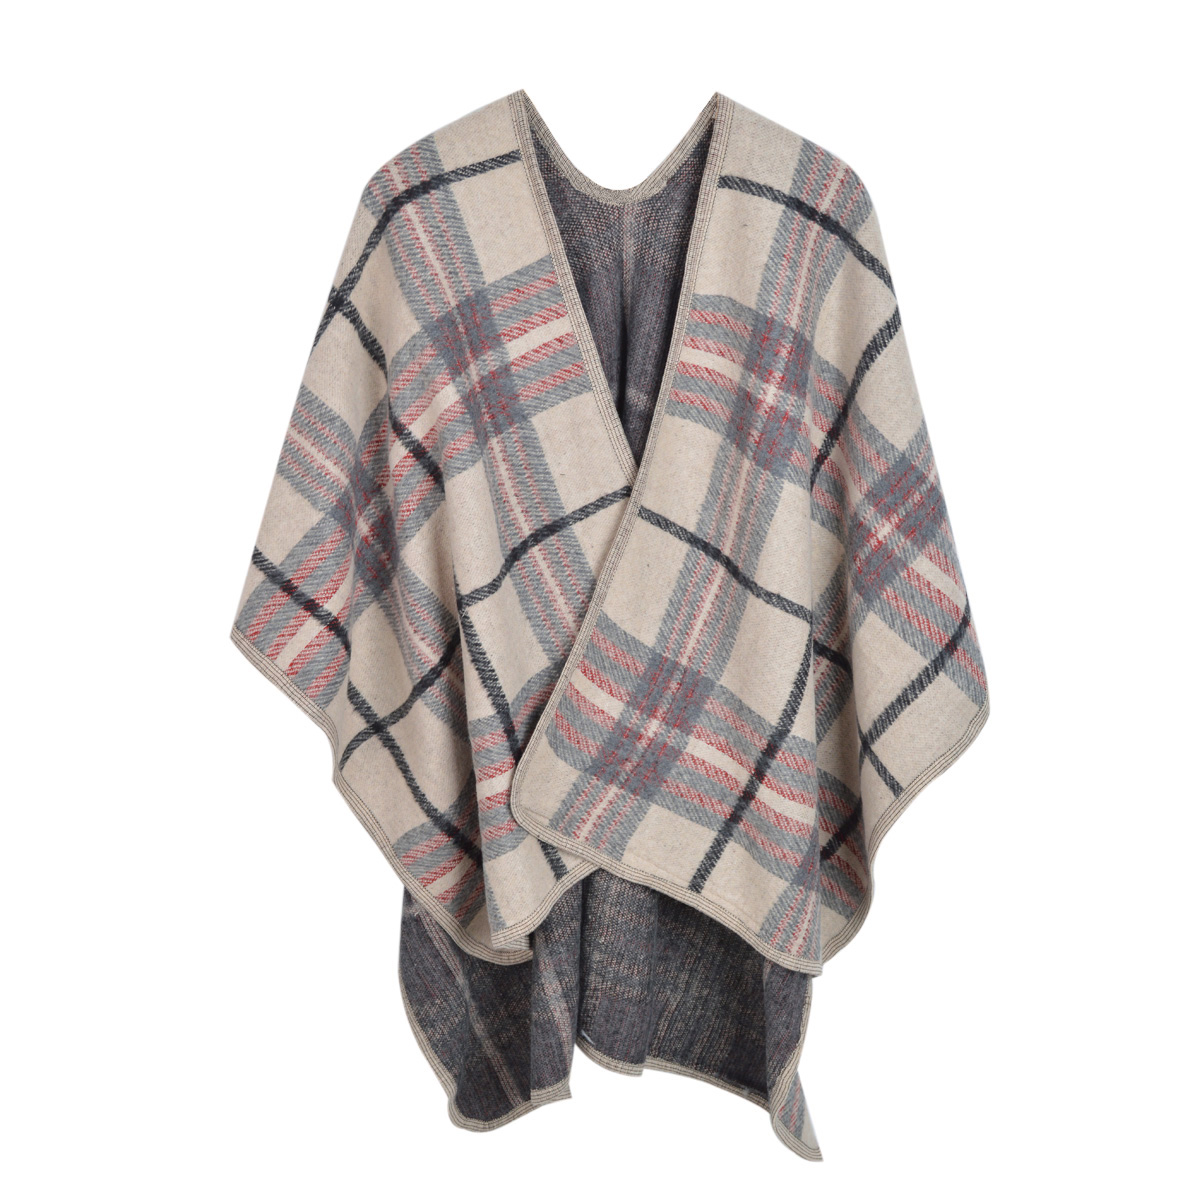 Premium Warm Winter Check Plaid Blanket Poncho Shawl Cape Wrap